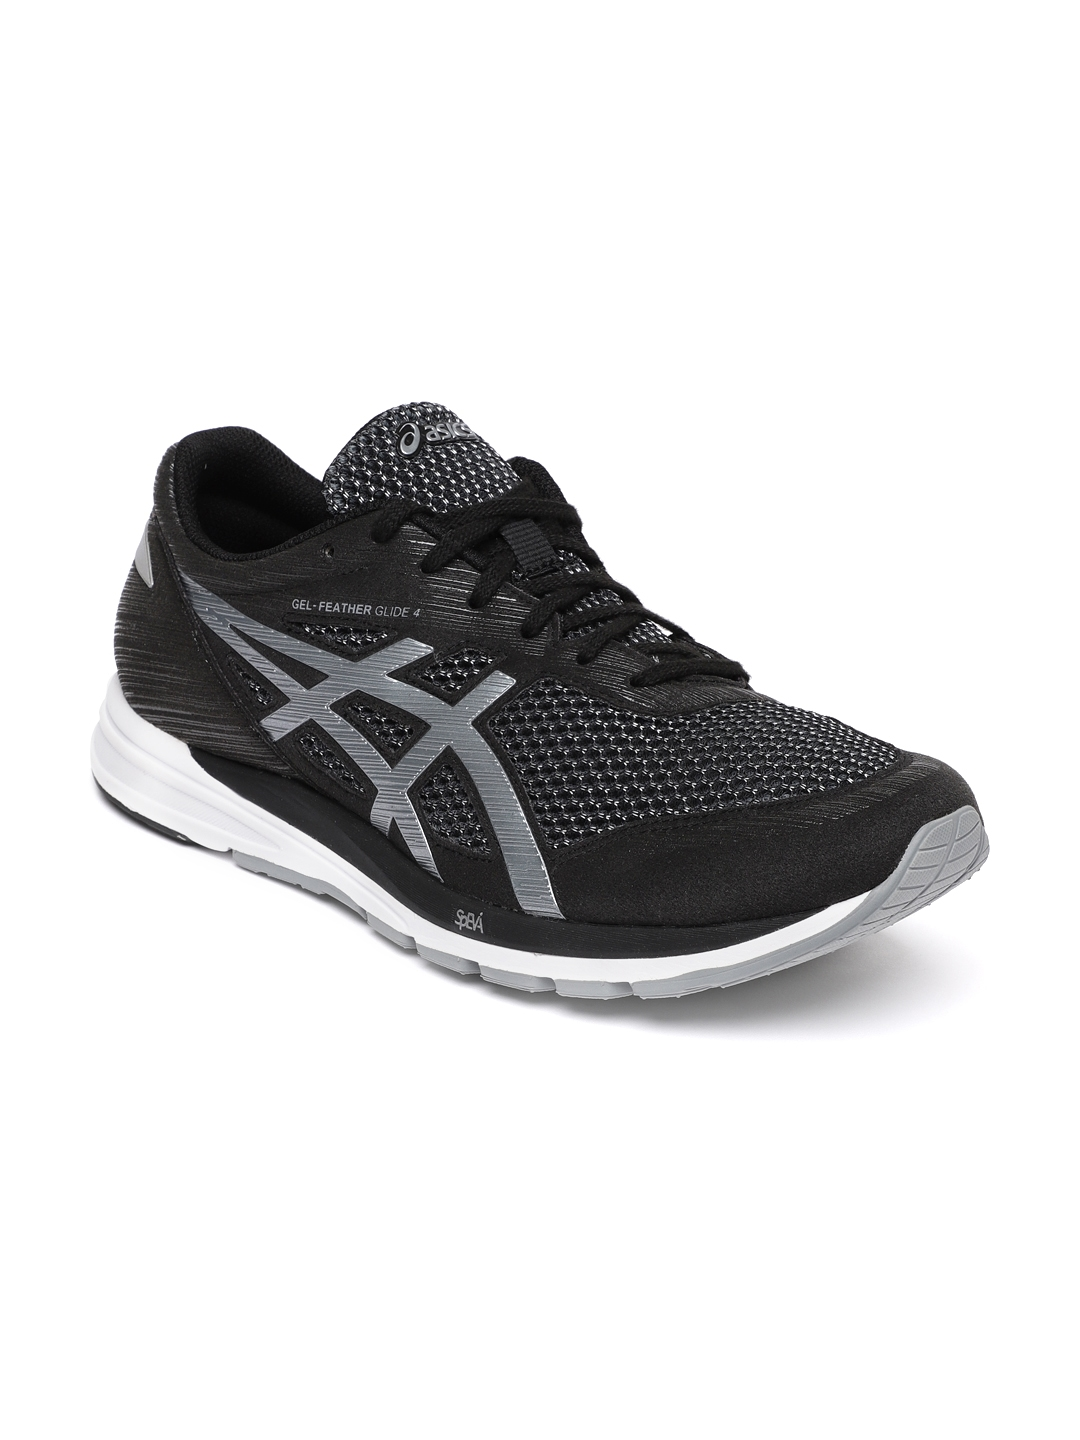 c8fe21d756f31 Buy Asics Black GEL FEATHER GLIDE 4 Running Sports Shoes - Sports ...